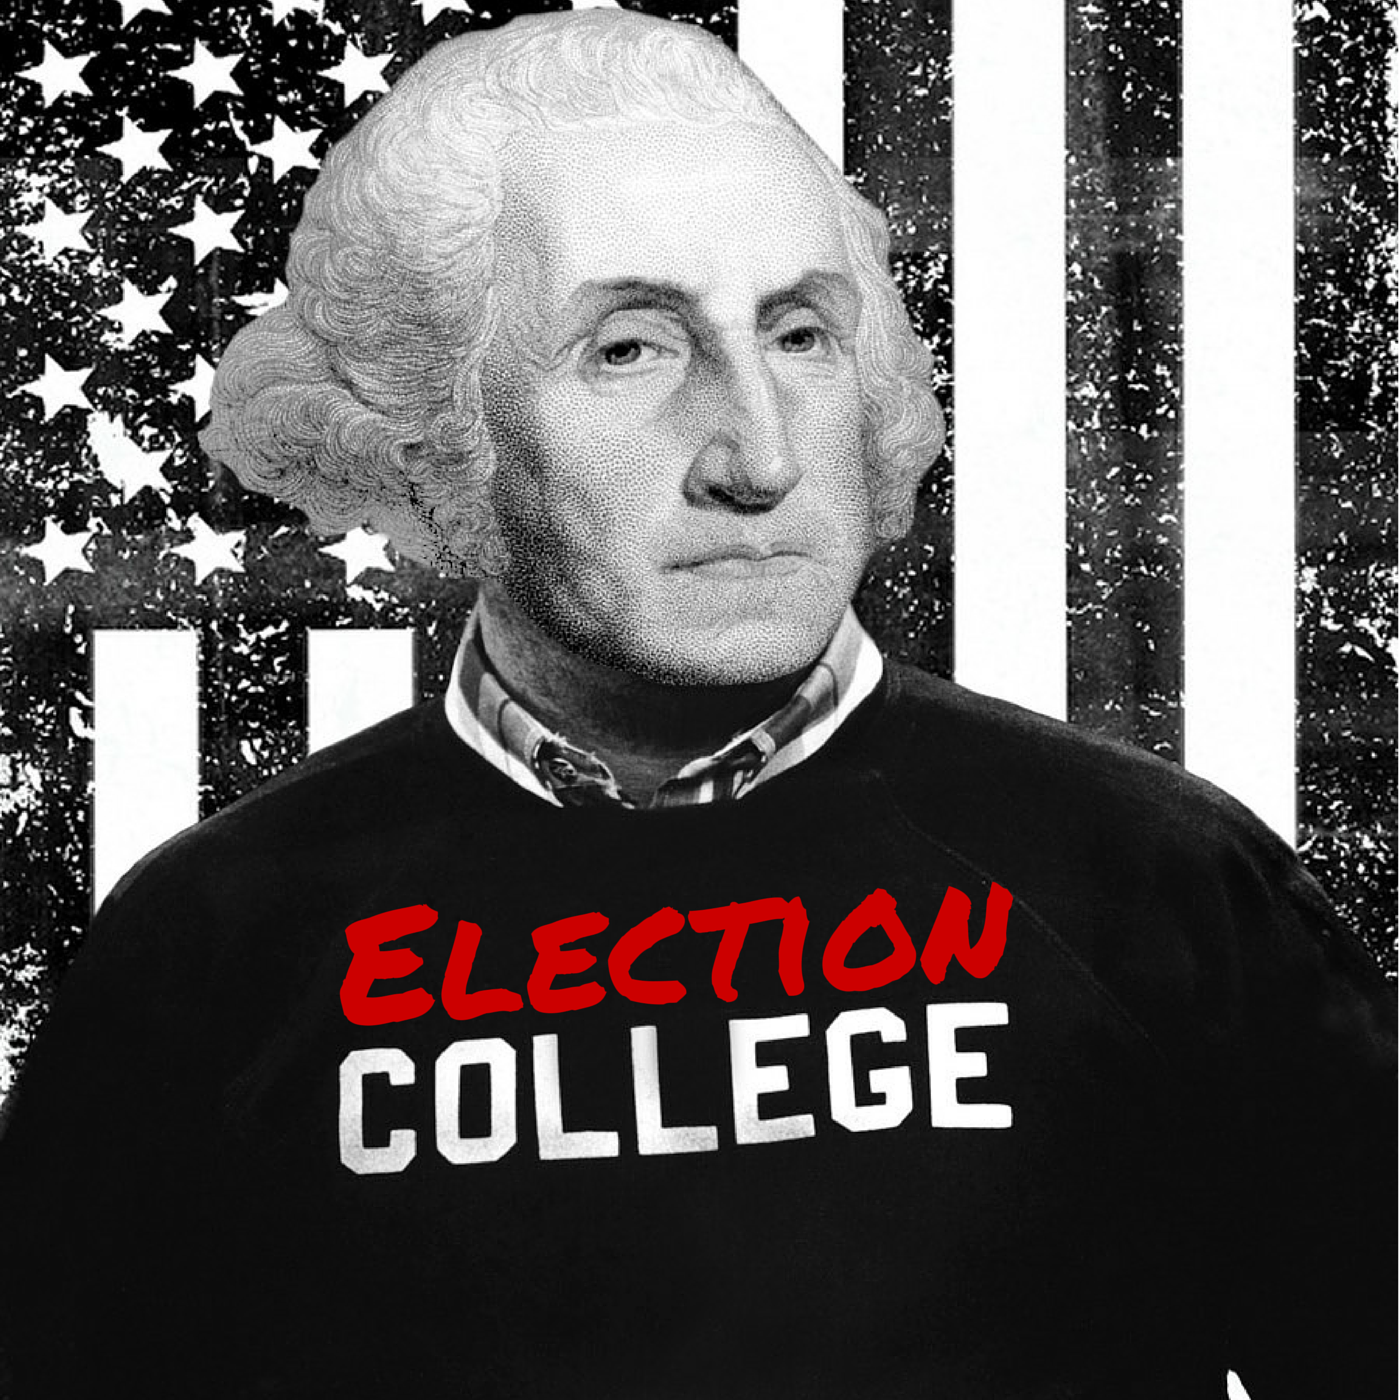 He Kept Us Out Of War - Election of 1916 | Episode #045 | Election College: United States Presidential Election History